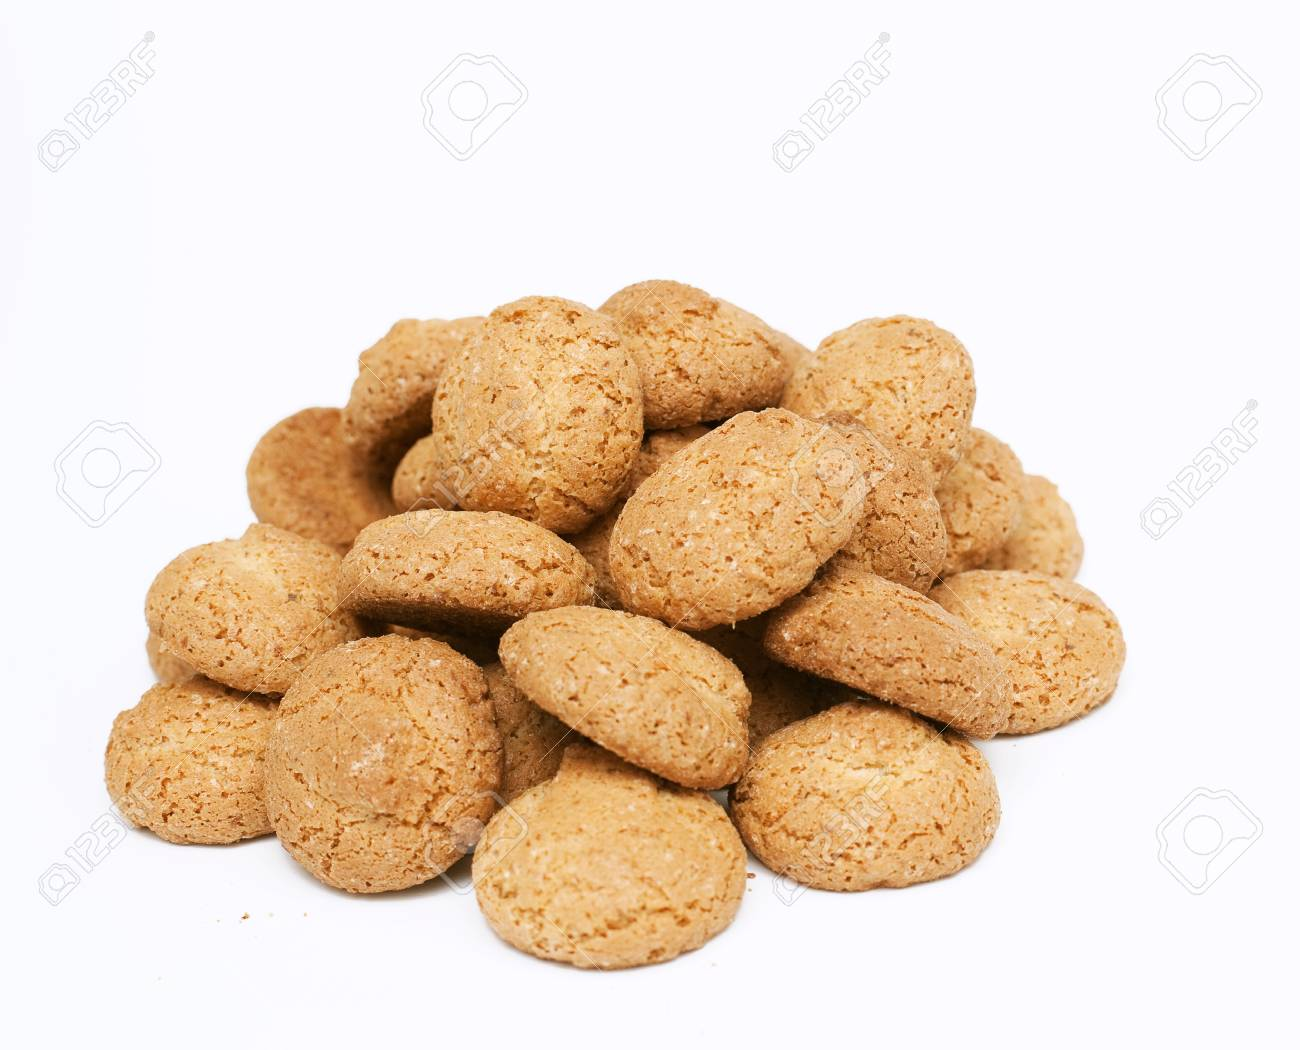 almond cookies isolated on white background Stock Photo - 14509234